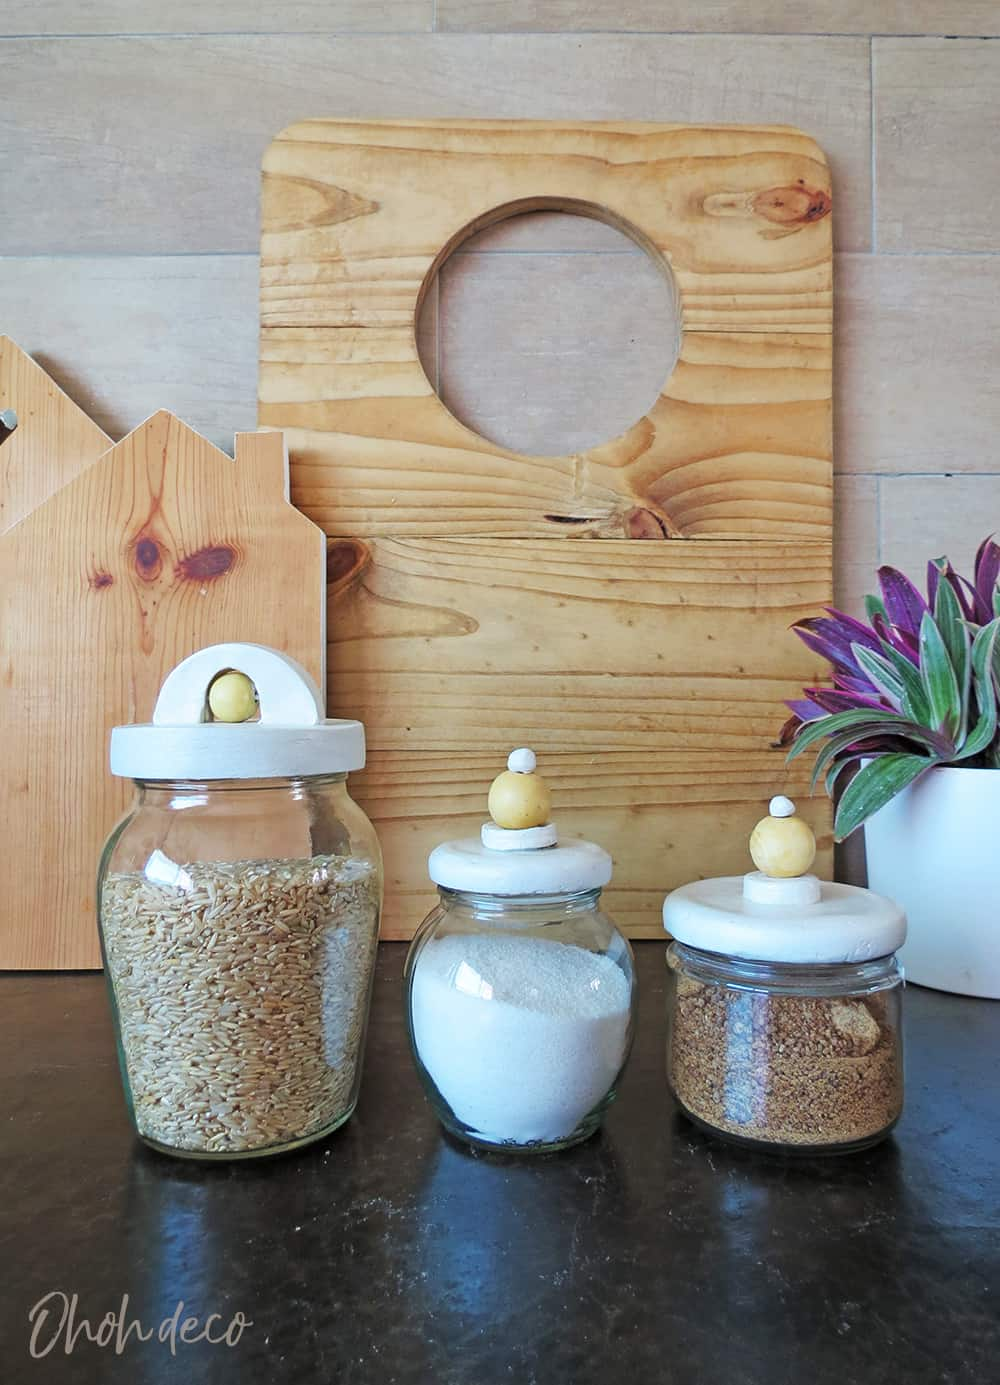 How to upcycle a glass jar lid with clay #diy #airclay #jar #storage #upcycle